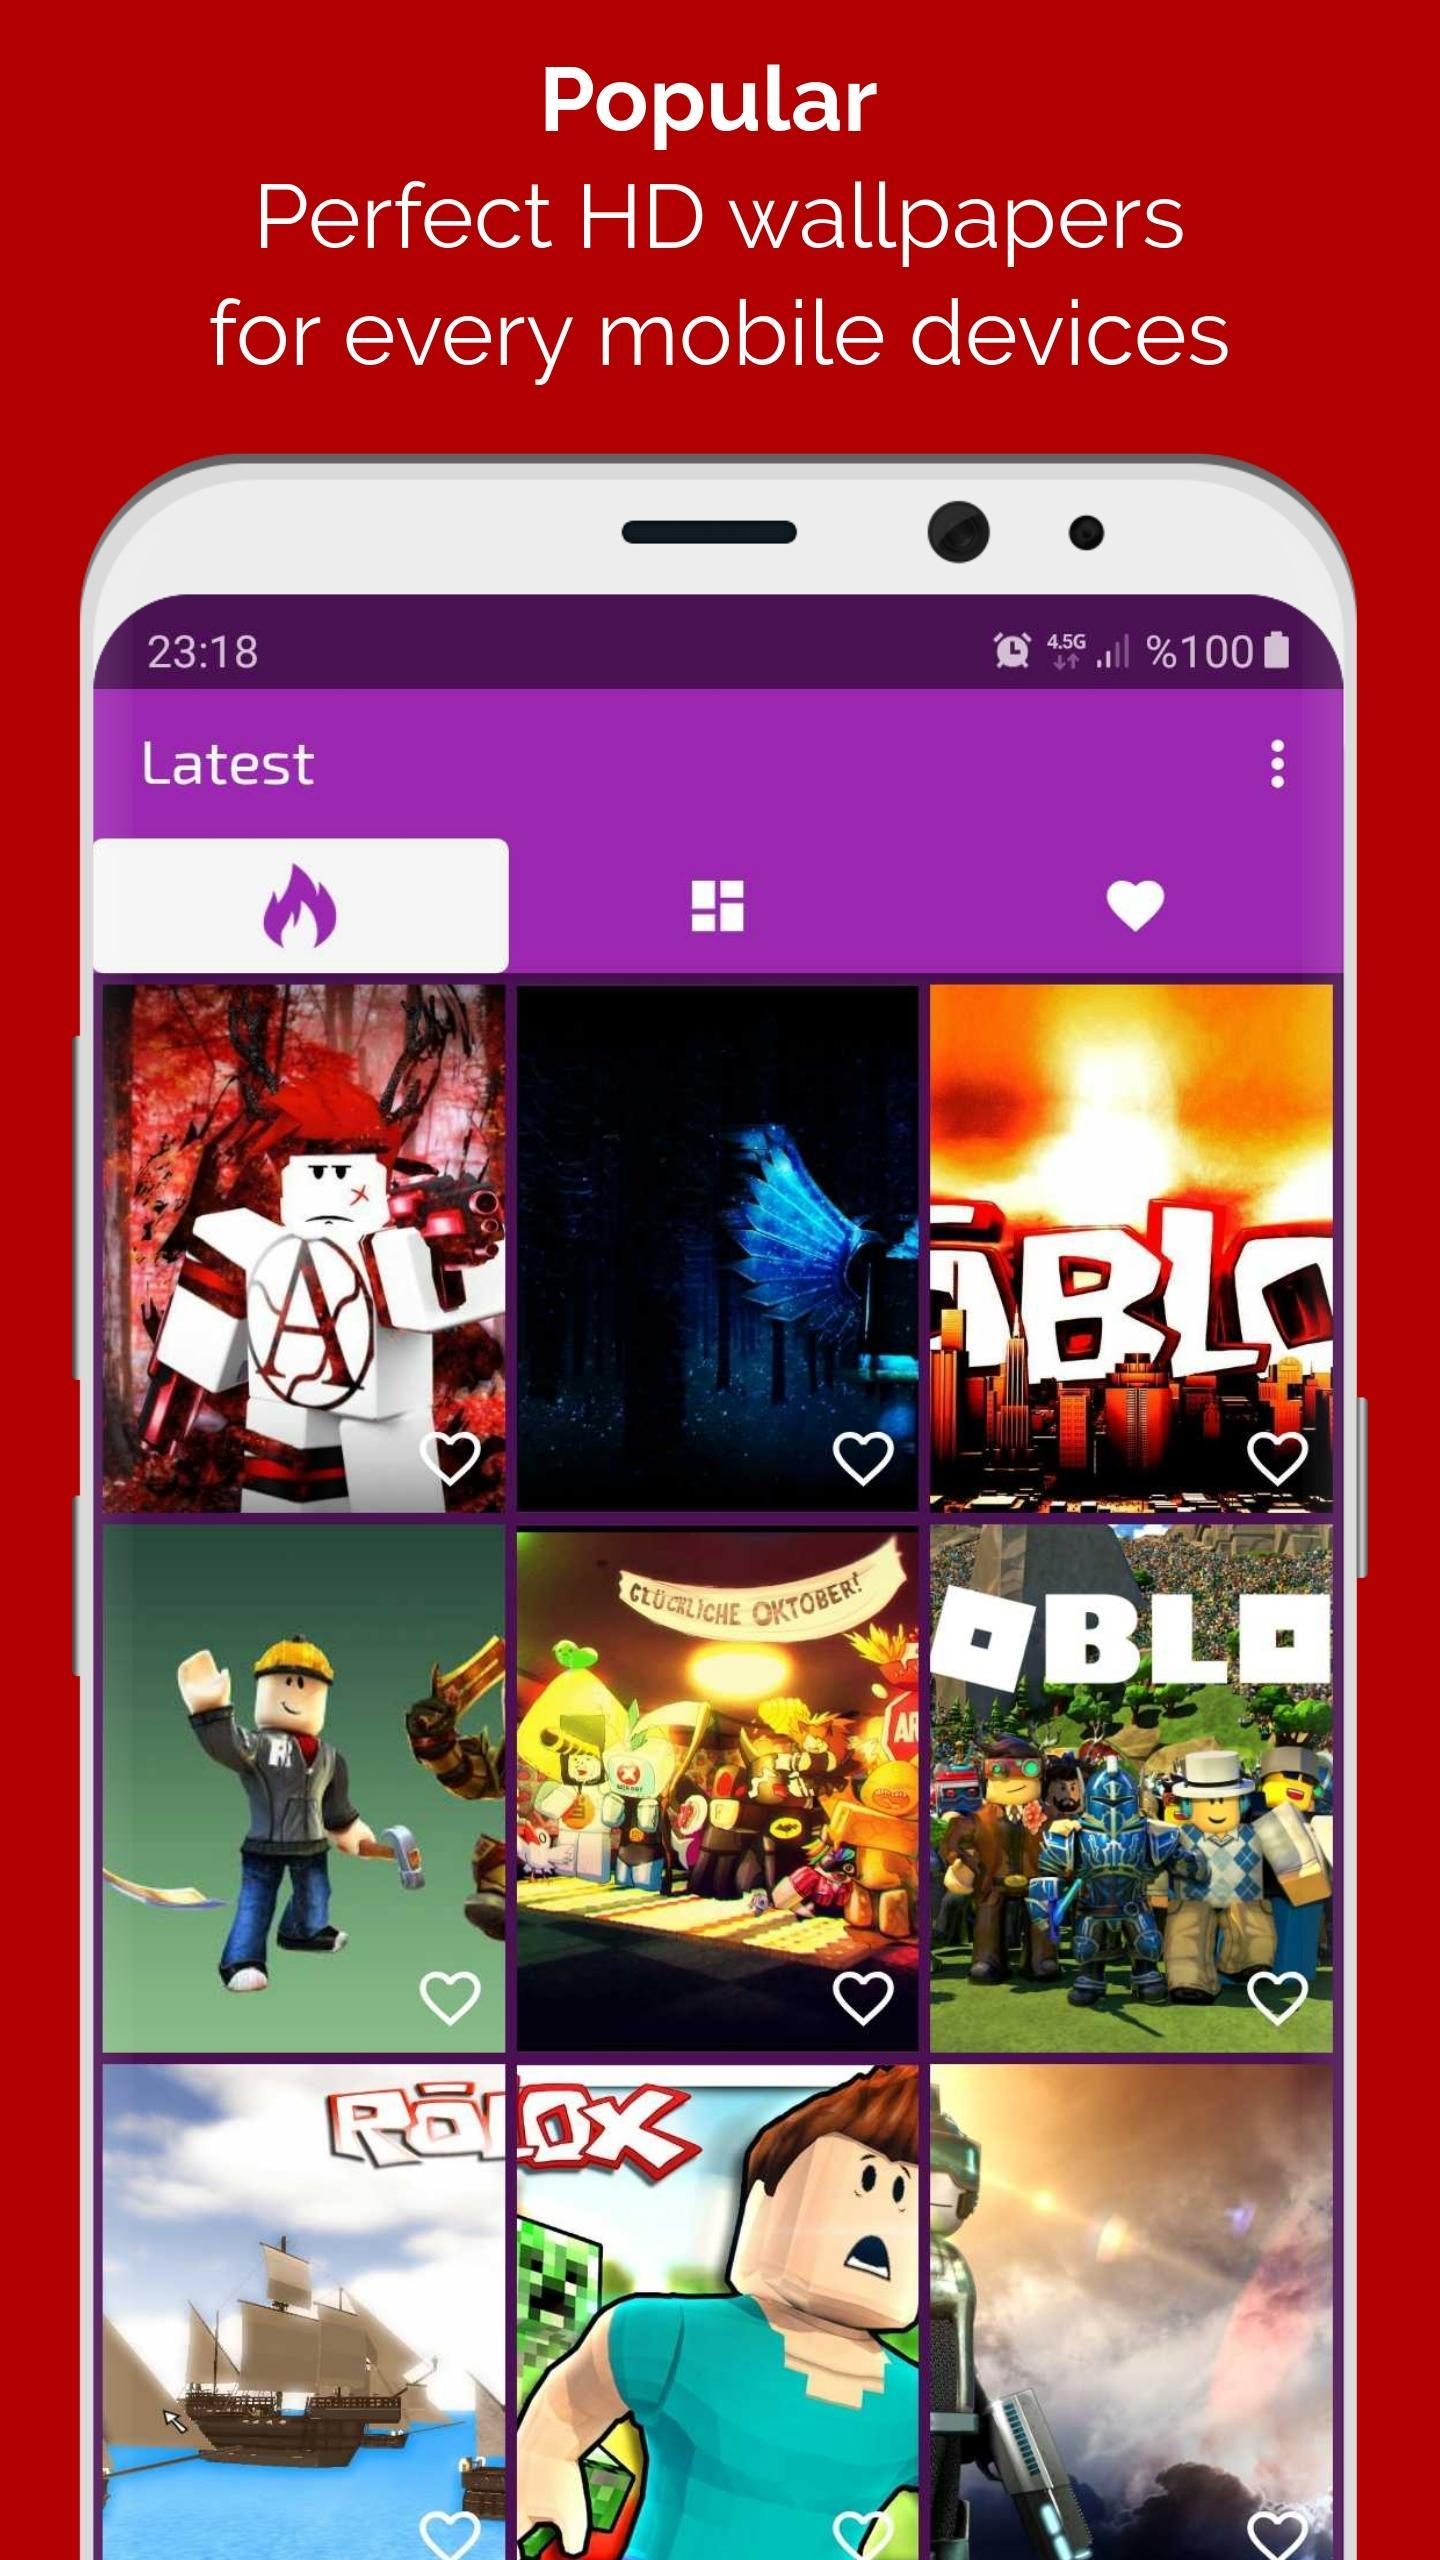 Wallpaper For Roblox Hd 2020 For Android Apk Download Hd Robiox Wallpaper For Boys And Girls 2020 For Android Apk Download